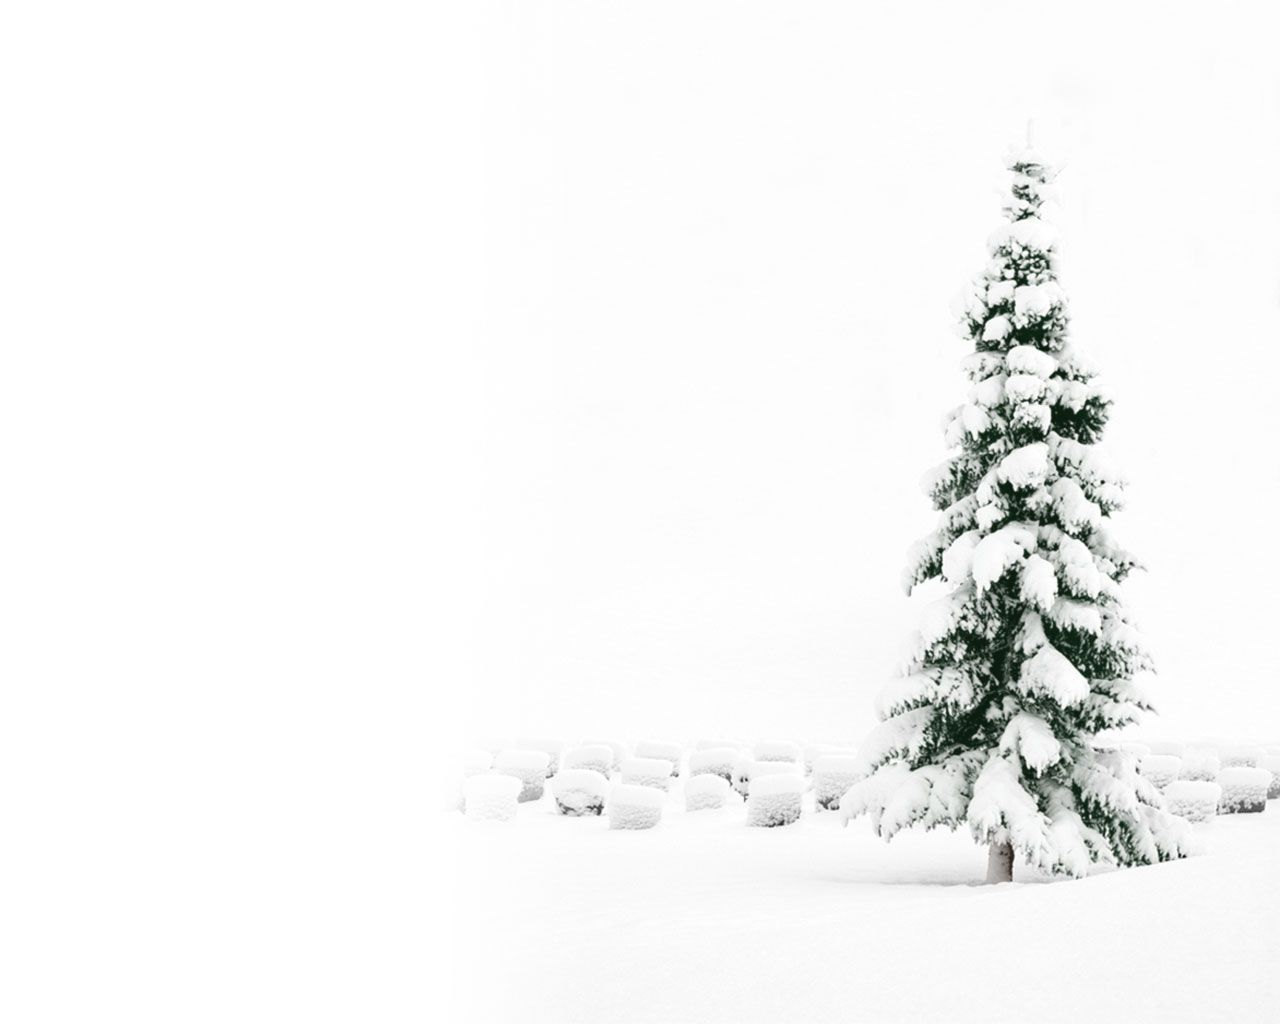 Snowy Christmas Tree Wallpaper Christmas Desktop Wallpaper Christmas Wallpaper Hd Christmas Desktop